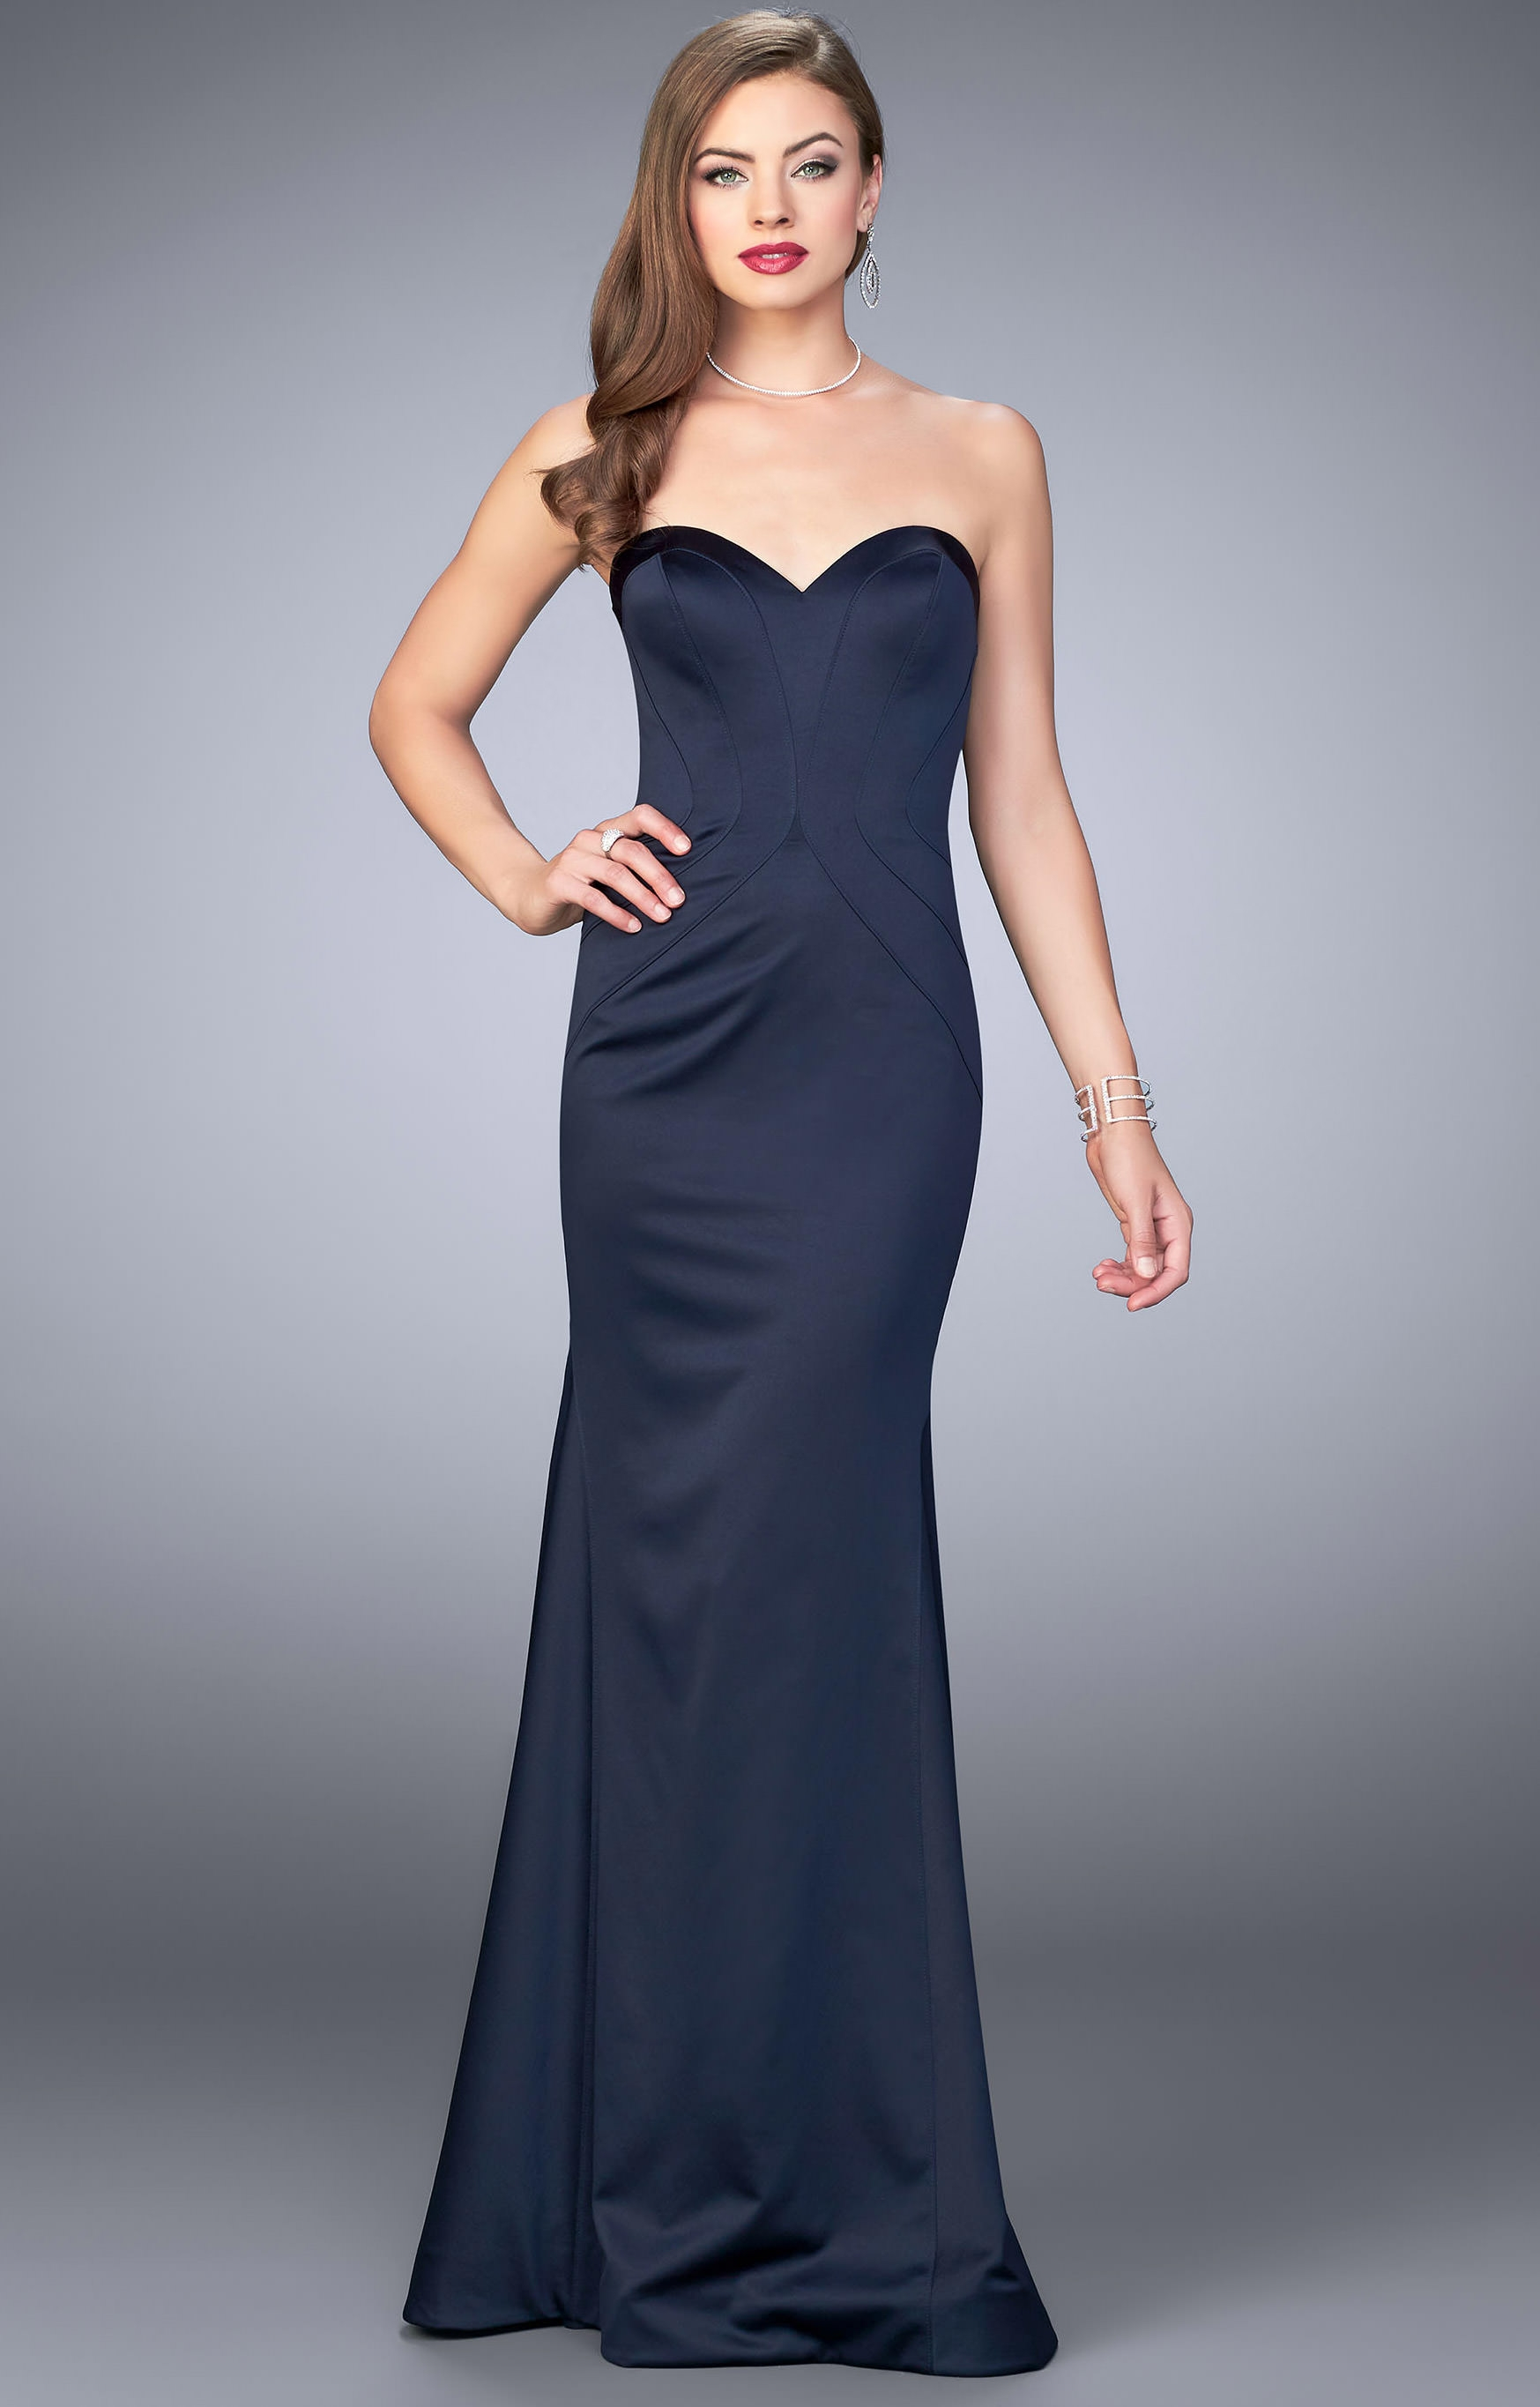 La Femme 23753 - Strapless and Sweetheart Two Piece Ball